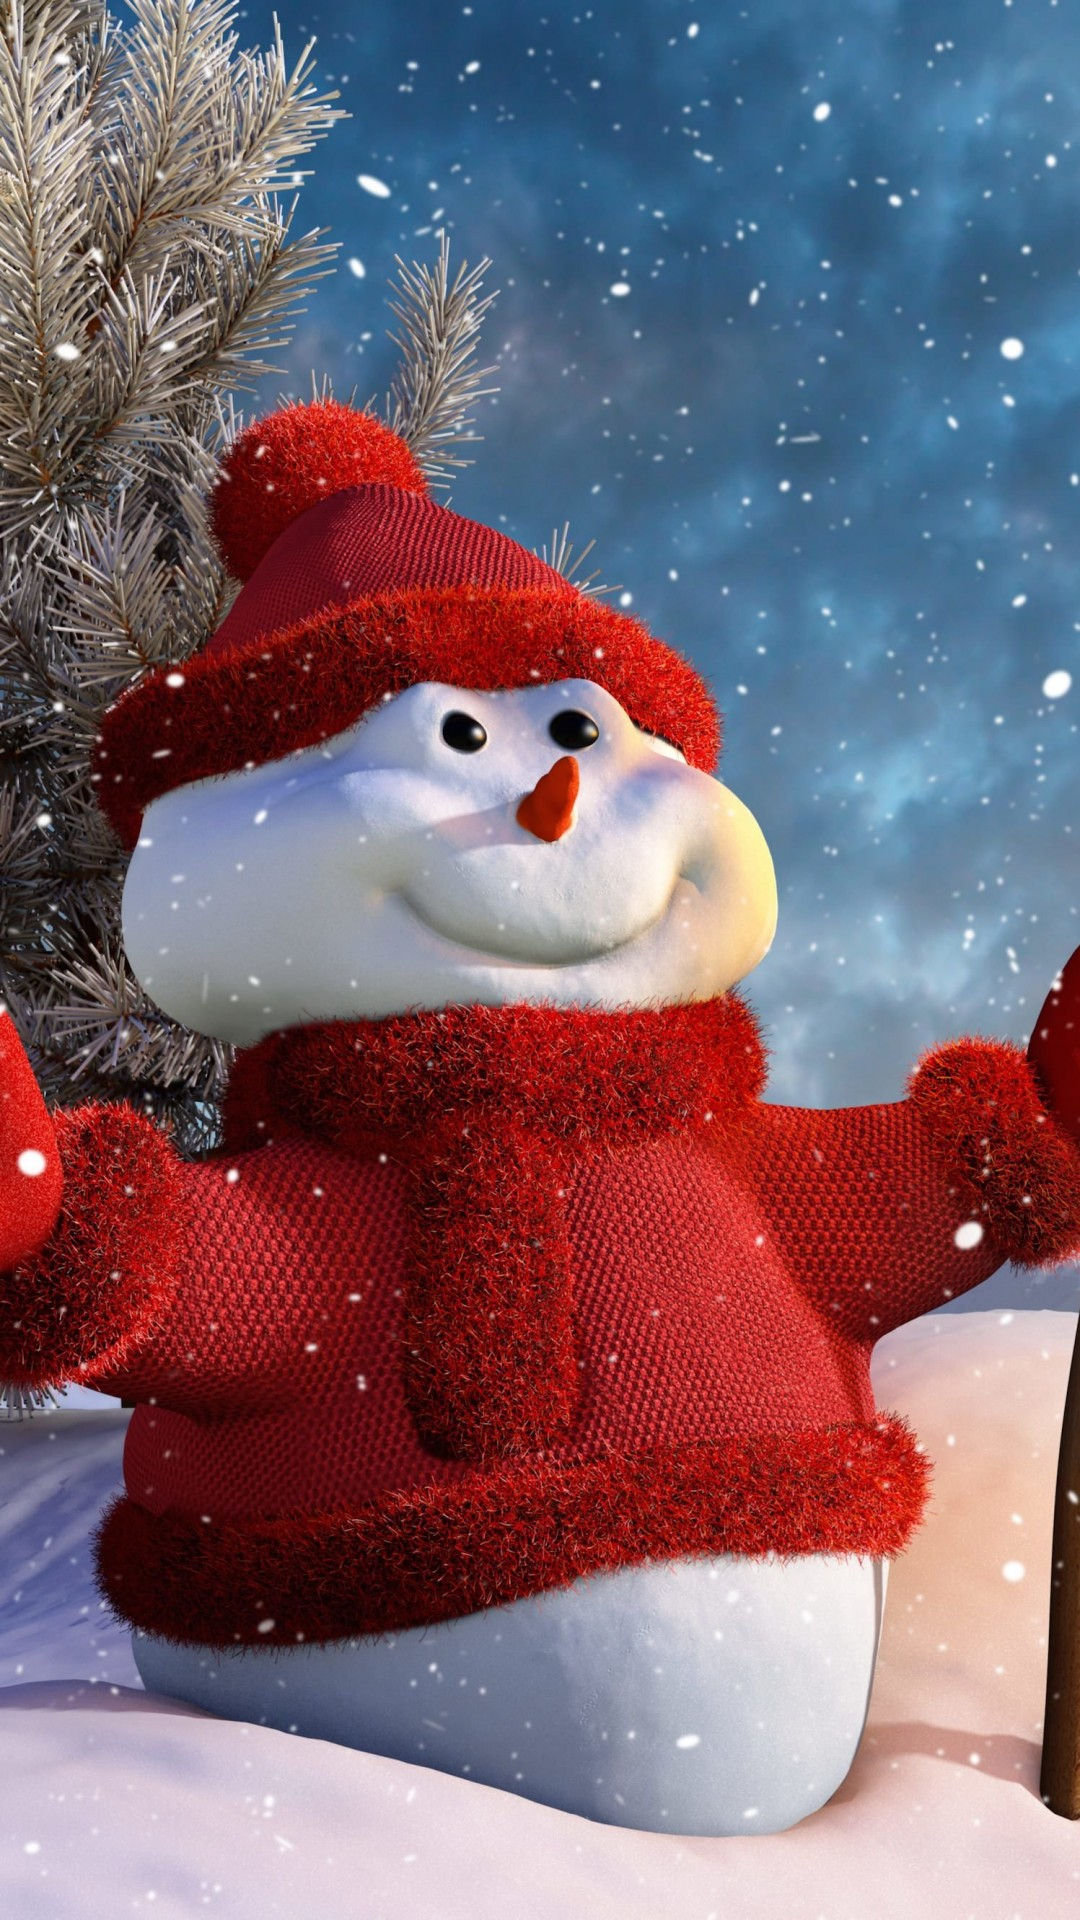 Christmas Snowman Wallpaper for SAMSUNG Galaxy Note 3